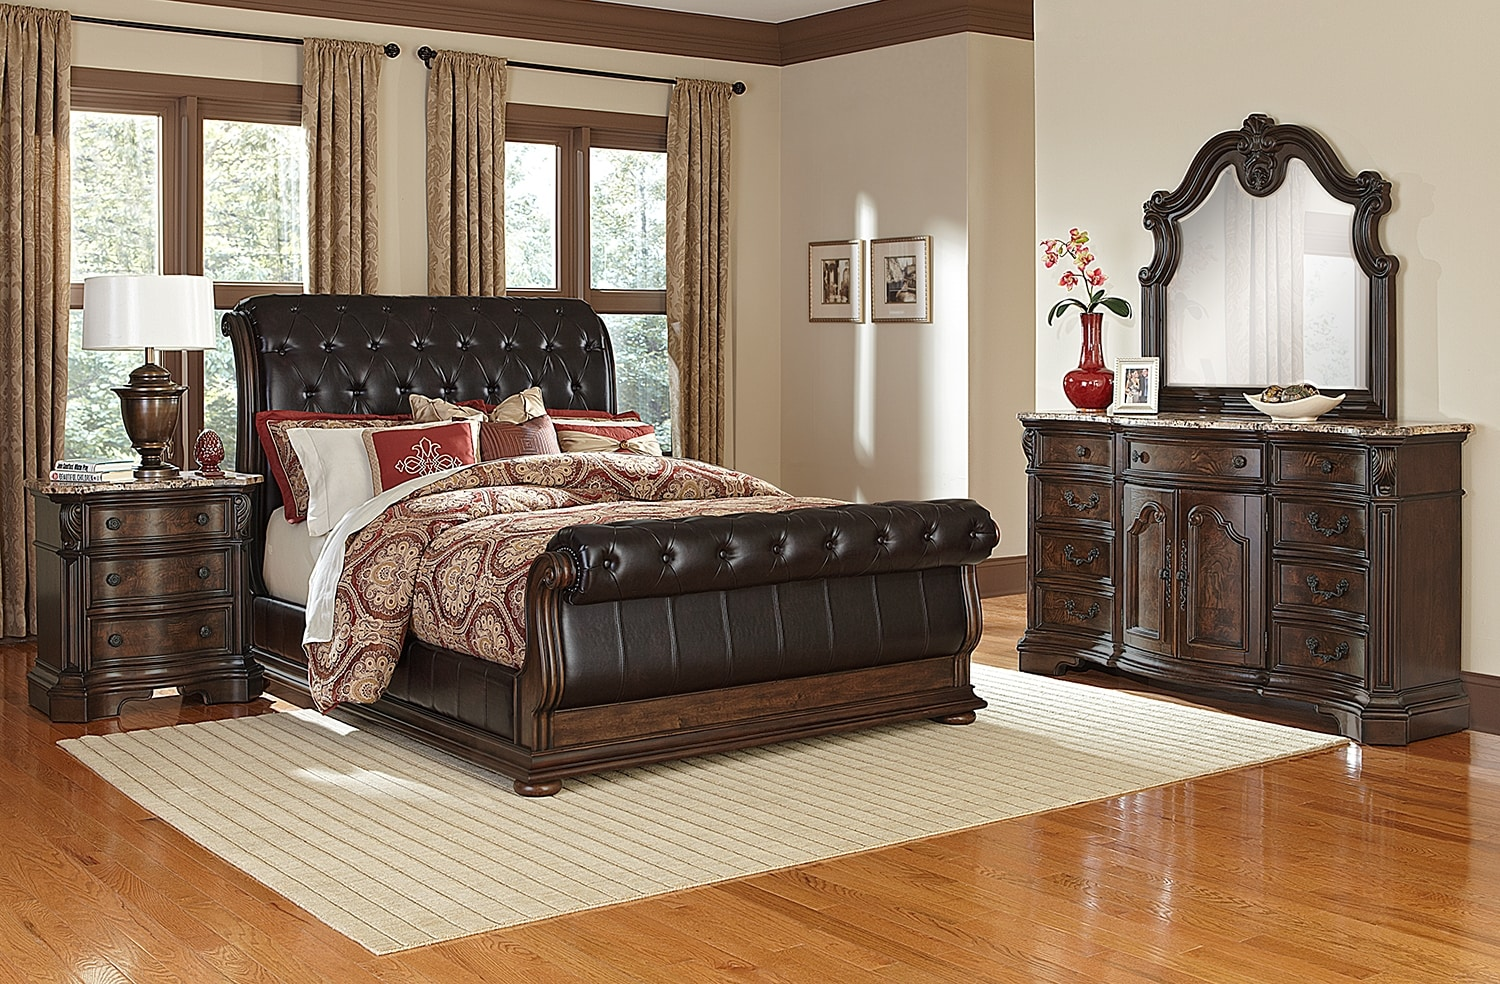 Bedroom Furniture   Monticello 6 Piece King Upholstered Sleigh Bedroom Set    Pecan